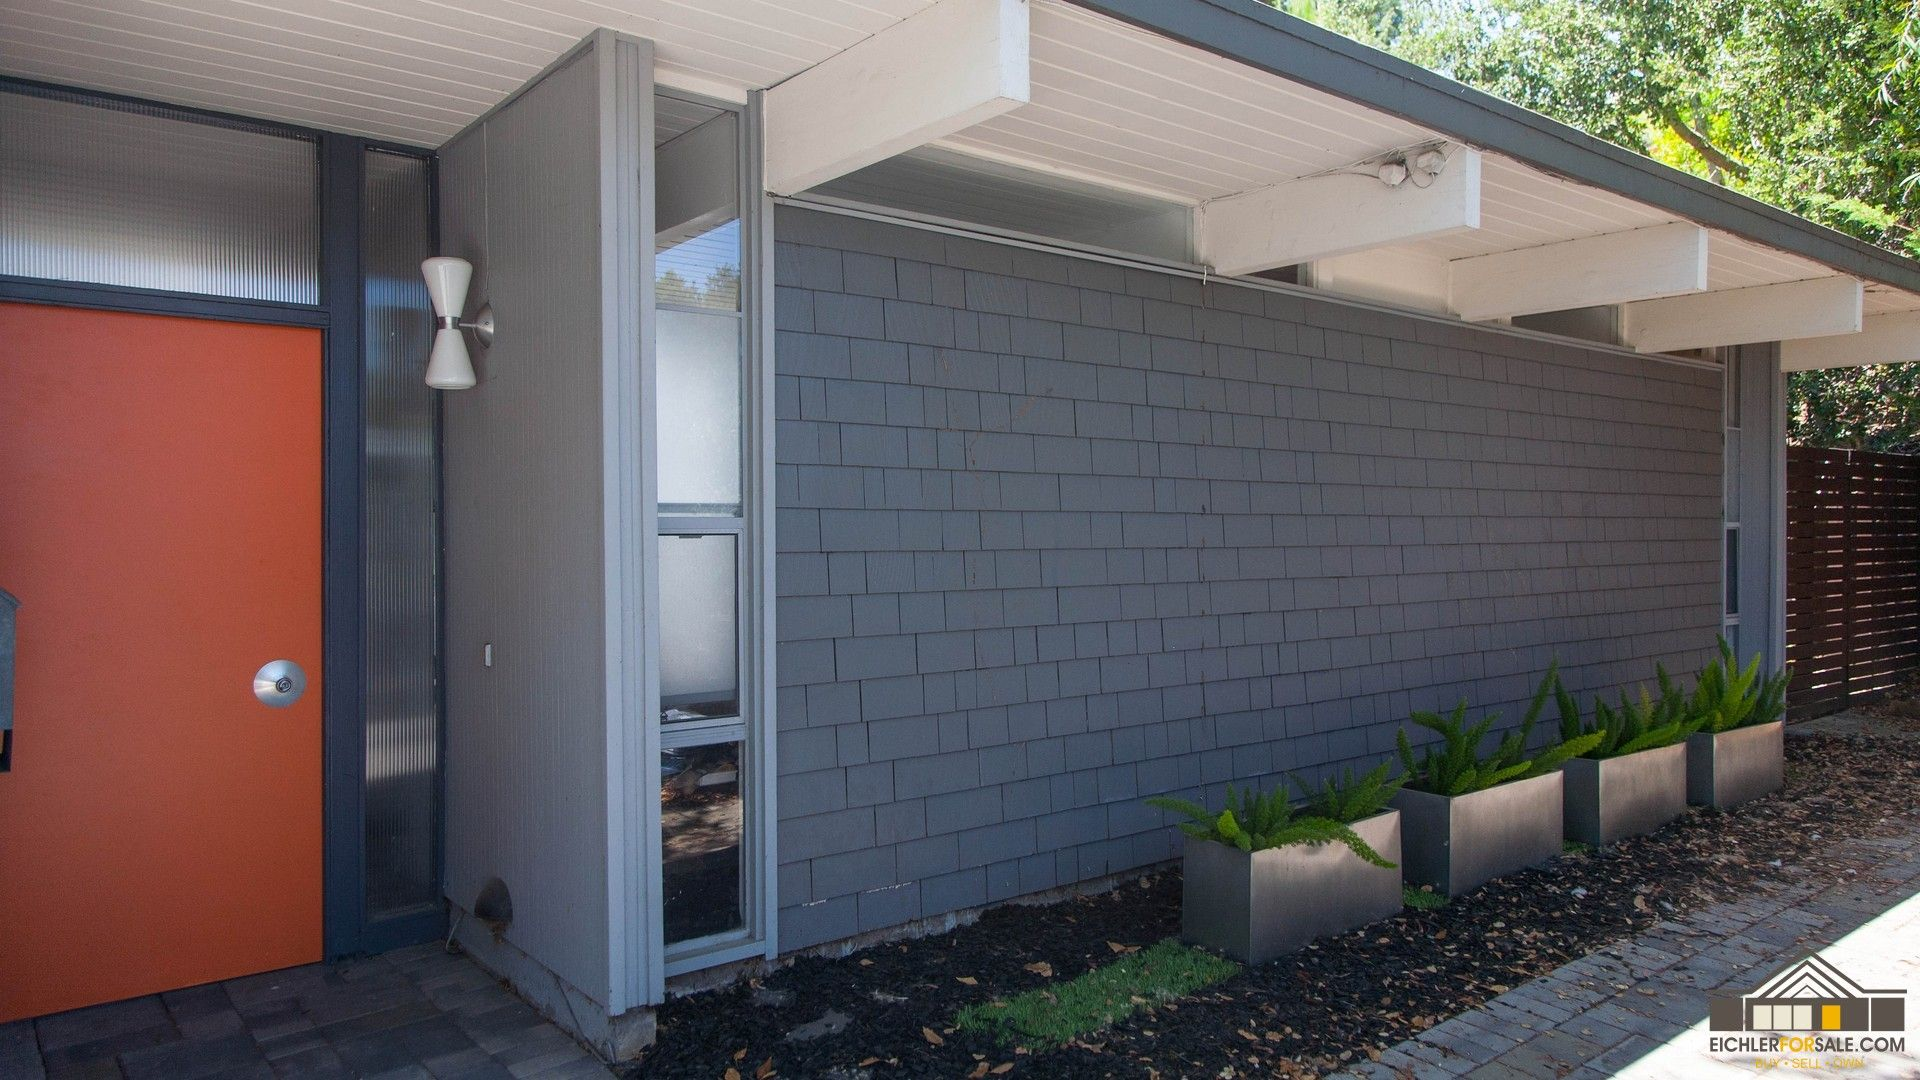 Painting Eichler Homes | Paint Ideas for Midcentury Modern Eichlers ...